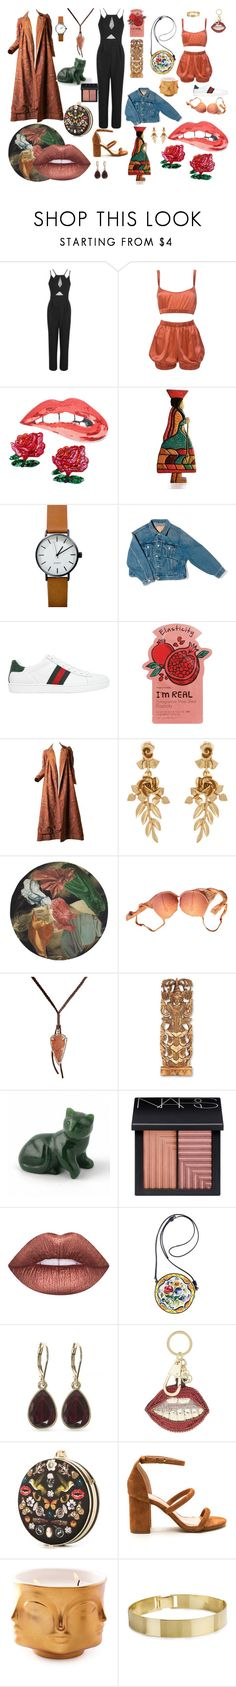 """""""while watching Catfish"""" by vaginatown on Polyvore featuring Roses Are Red, NOVICA, Balenciaga, Gucci, Charlotte Russe, Oscar de la Renta, La Perla, Feathered Soul, NARS Cosmetics and Lime Crime"""